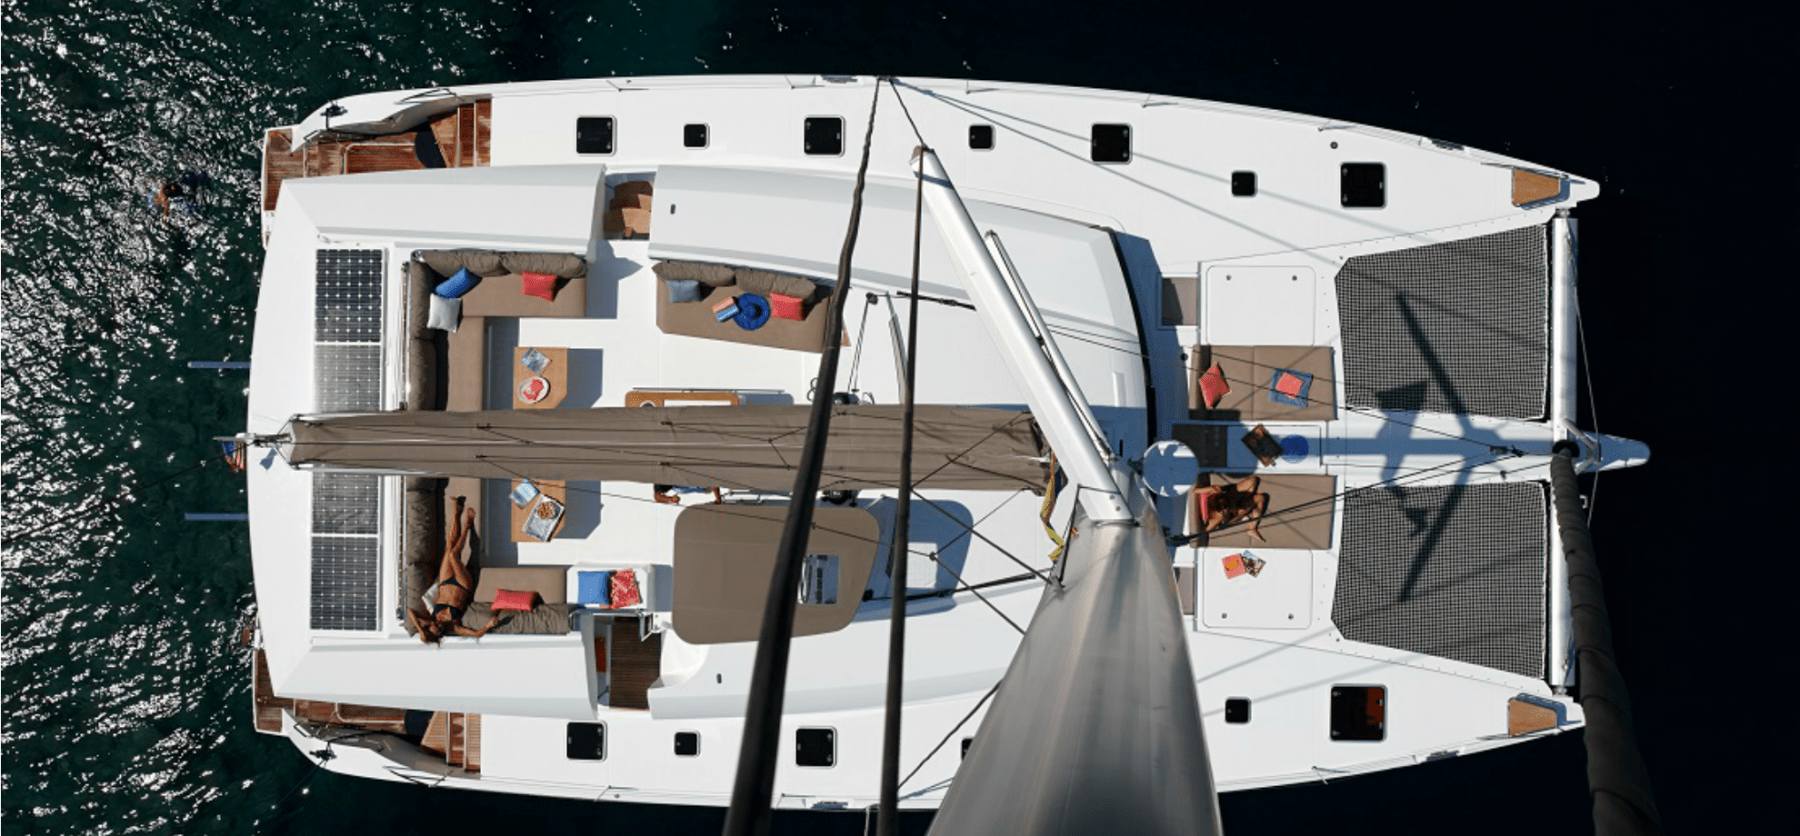 Overview of the massive deck with several spacious sun bathing areas of the Pajot Ipanema 58